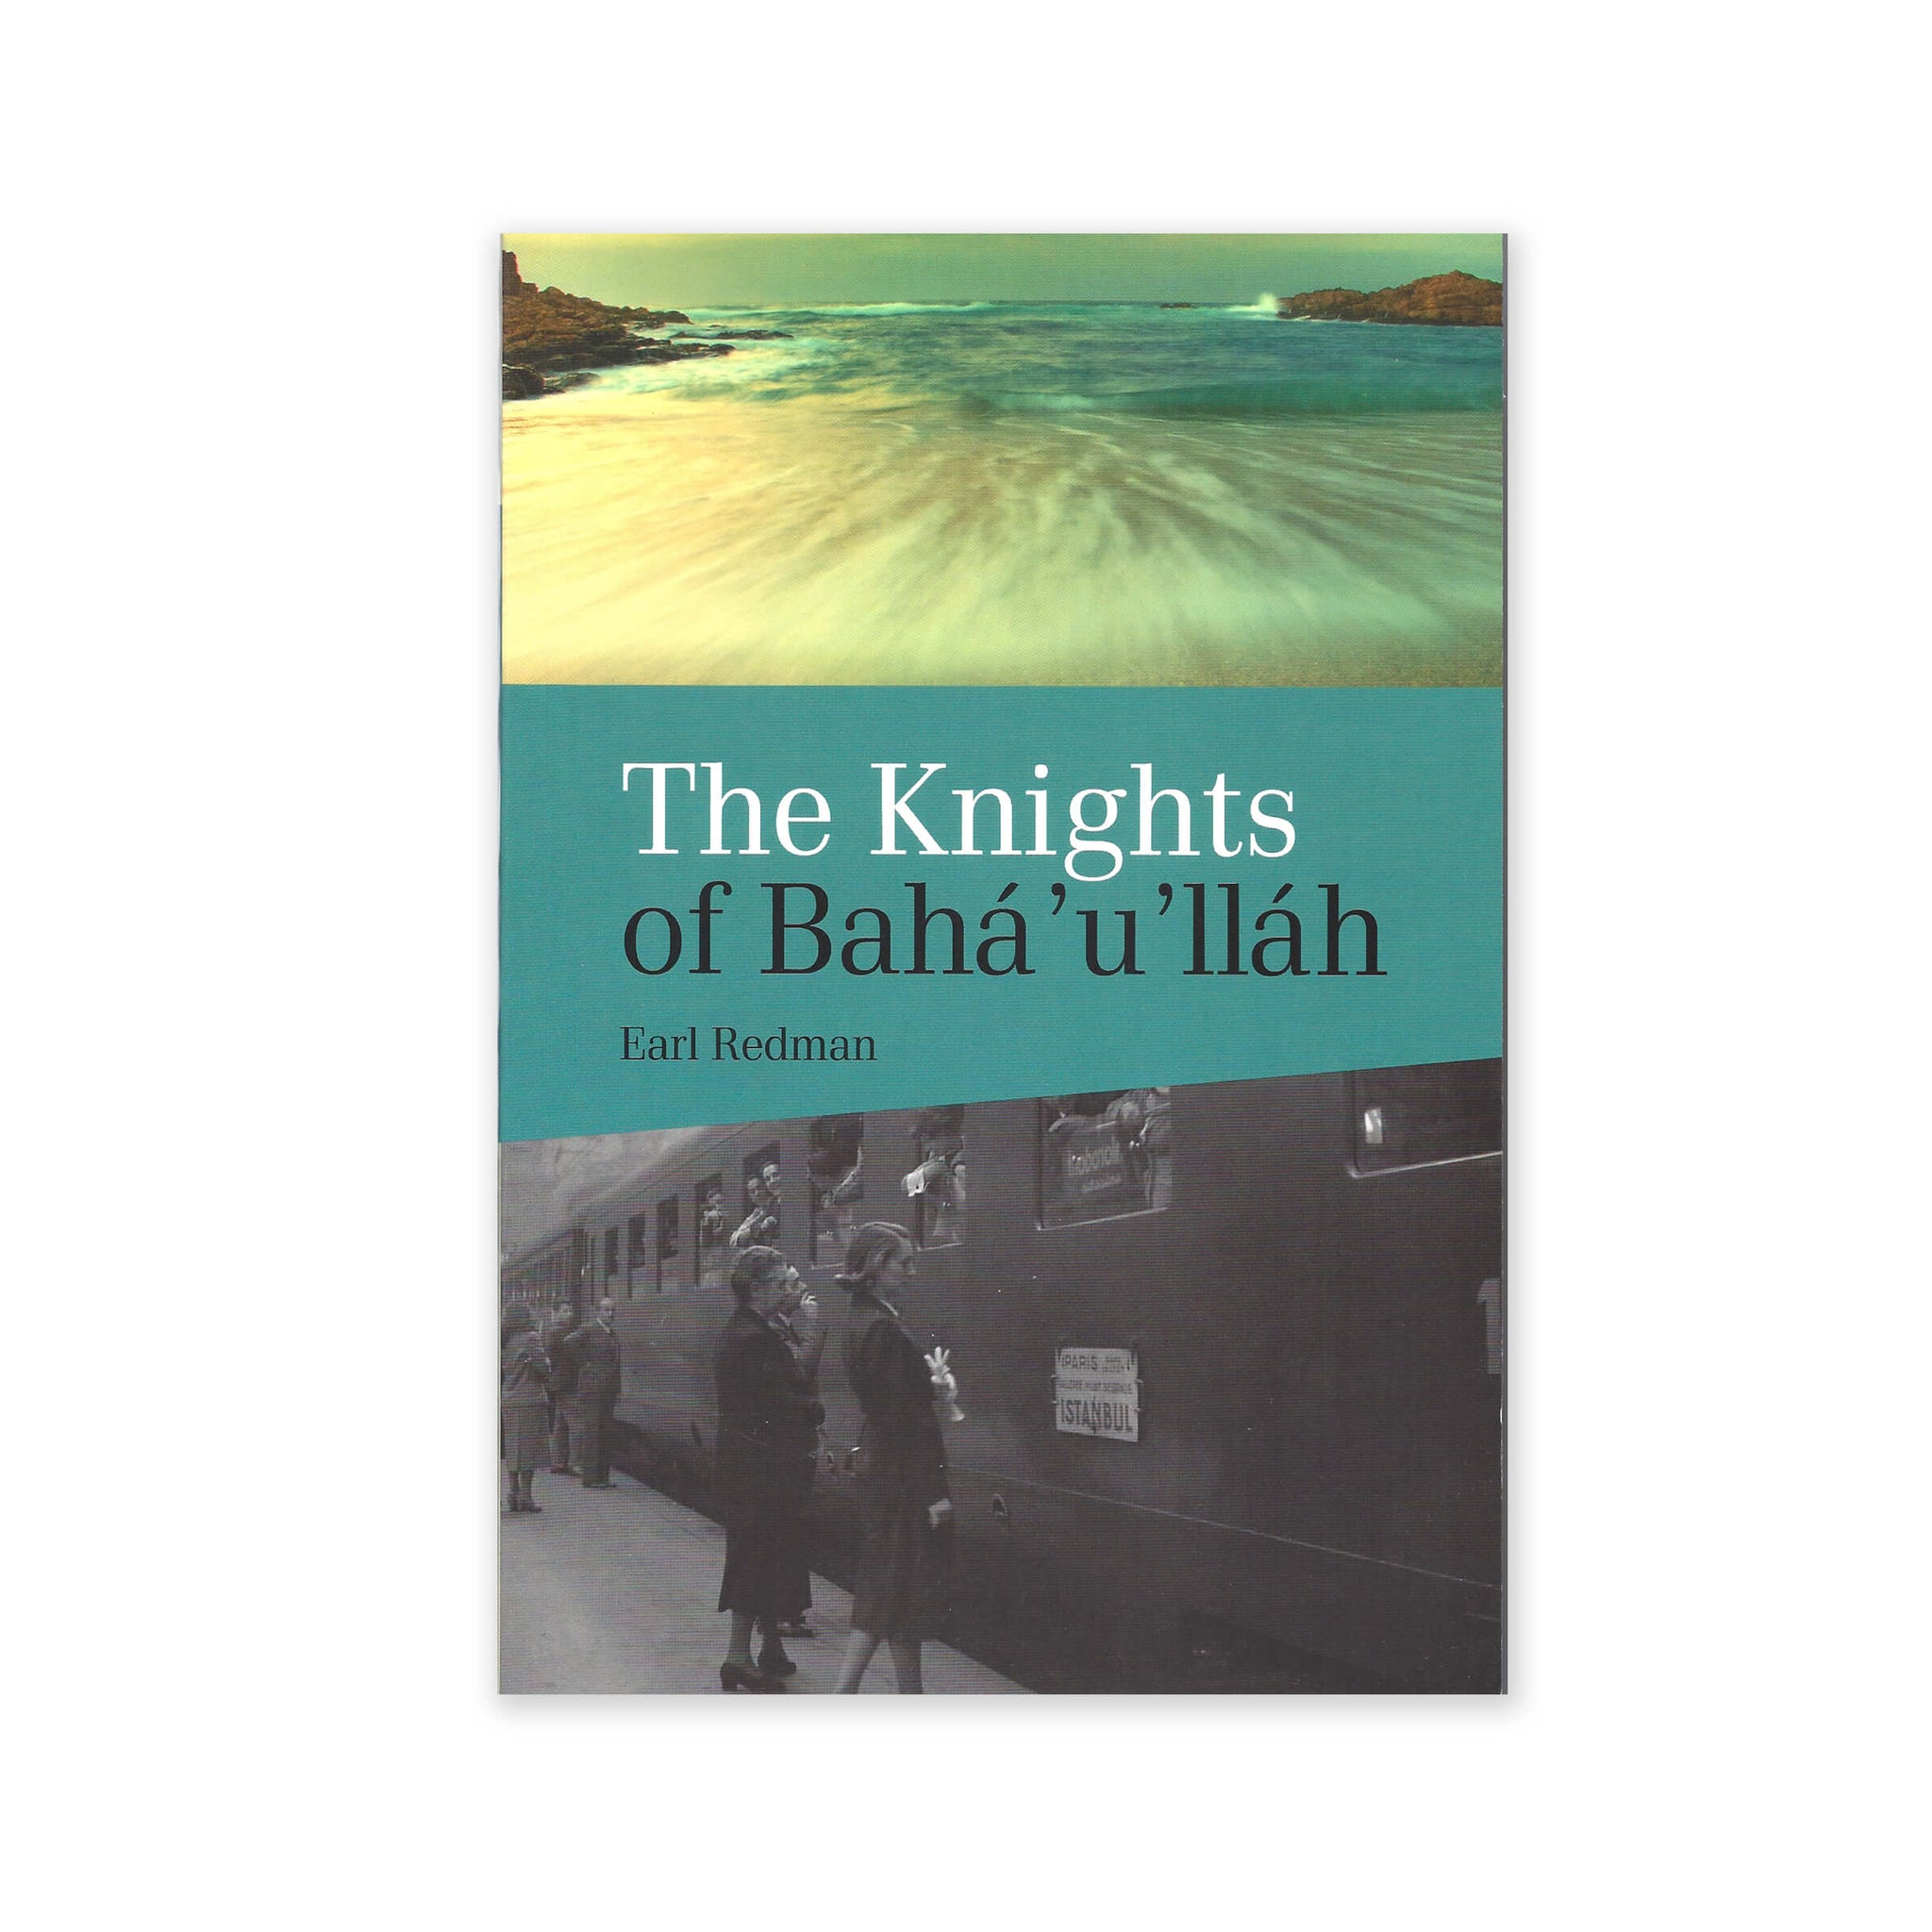 Knights of Baha'u'llah - The Stories of all the Knights of Baha'u'llah